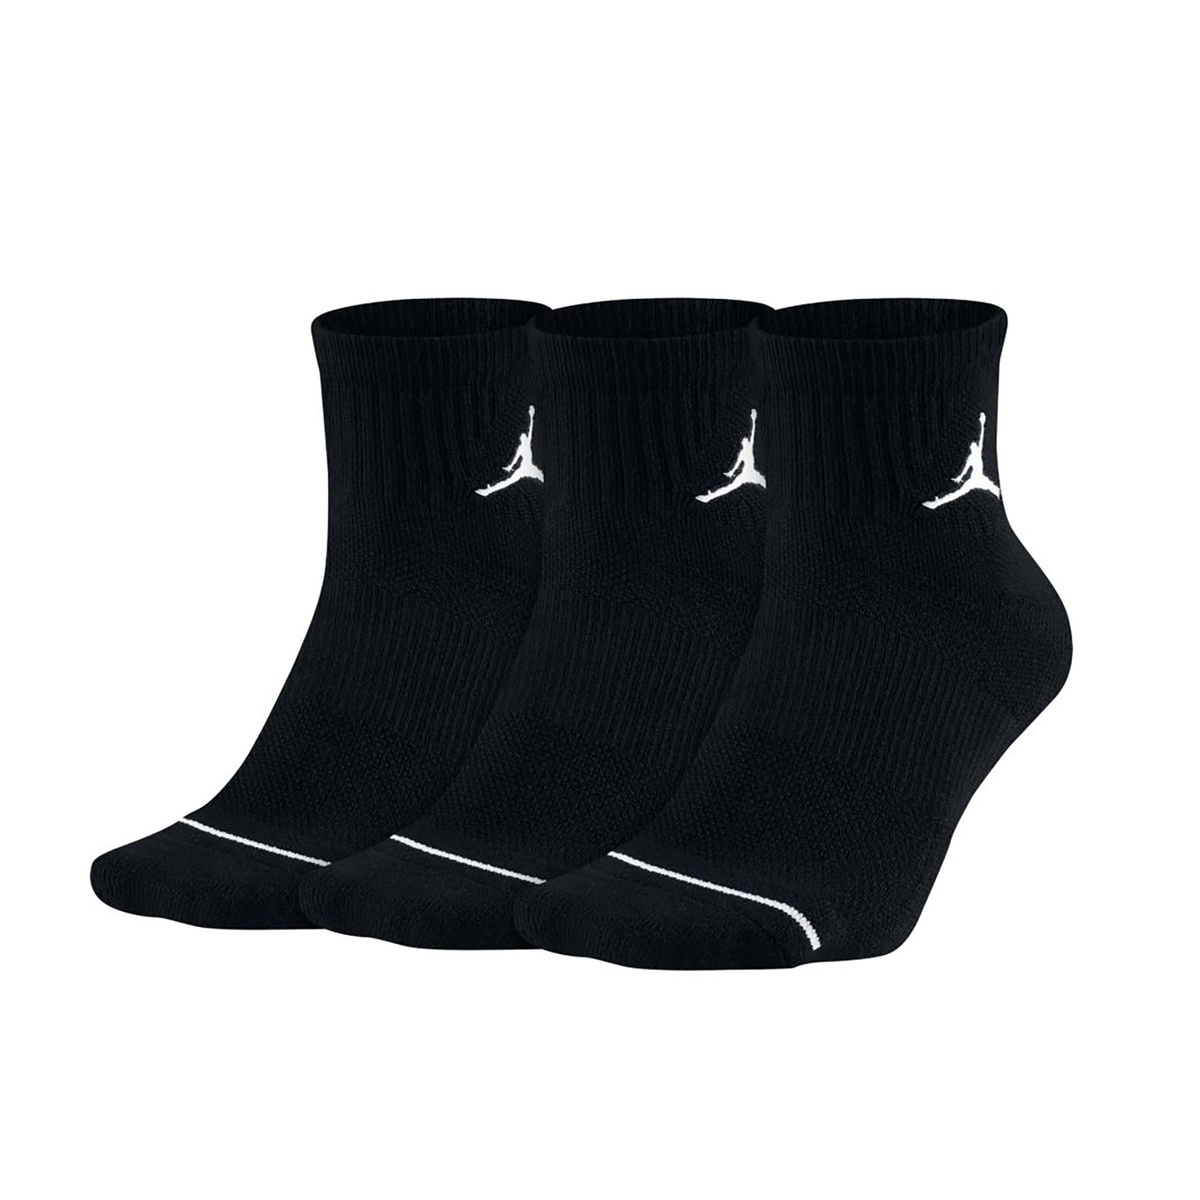 CALZE EVRY MAX ANKLE 3 PACK